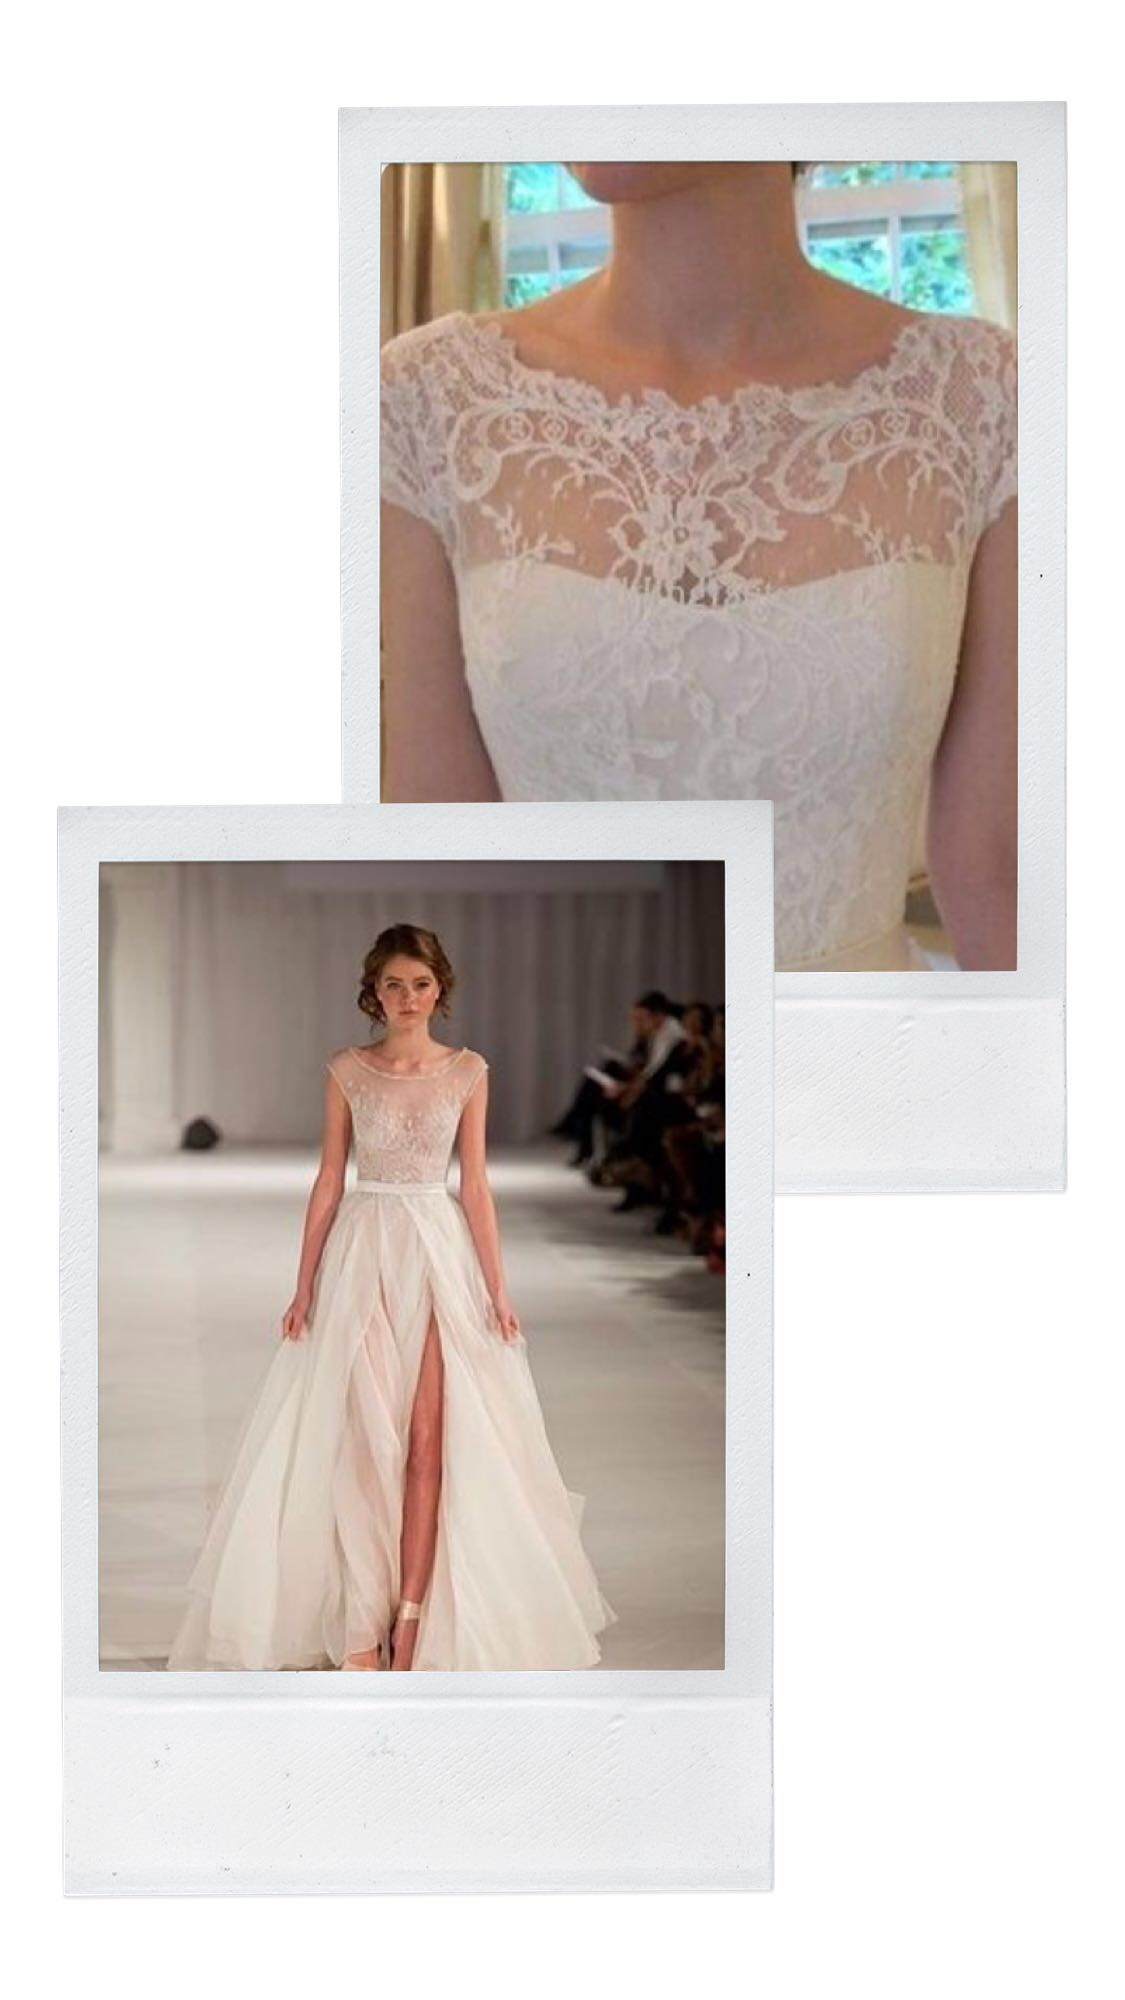 Dreaming of this day... - Since I was a little girl I had always envisioned what I thought my wedding dress would look like. I had Pinterest boards of pictures addressed